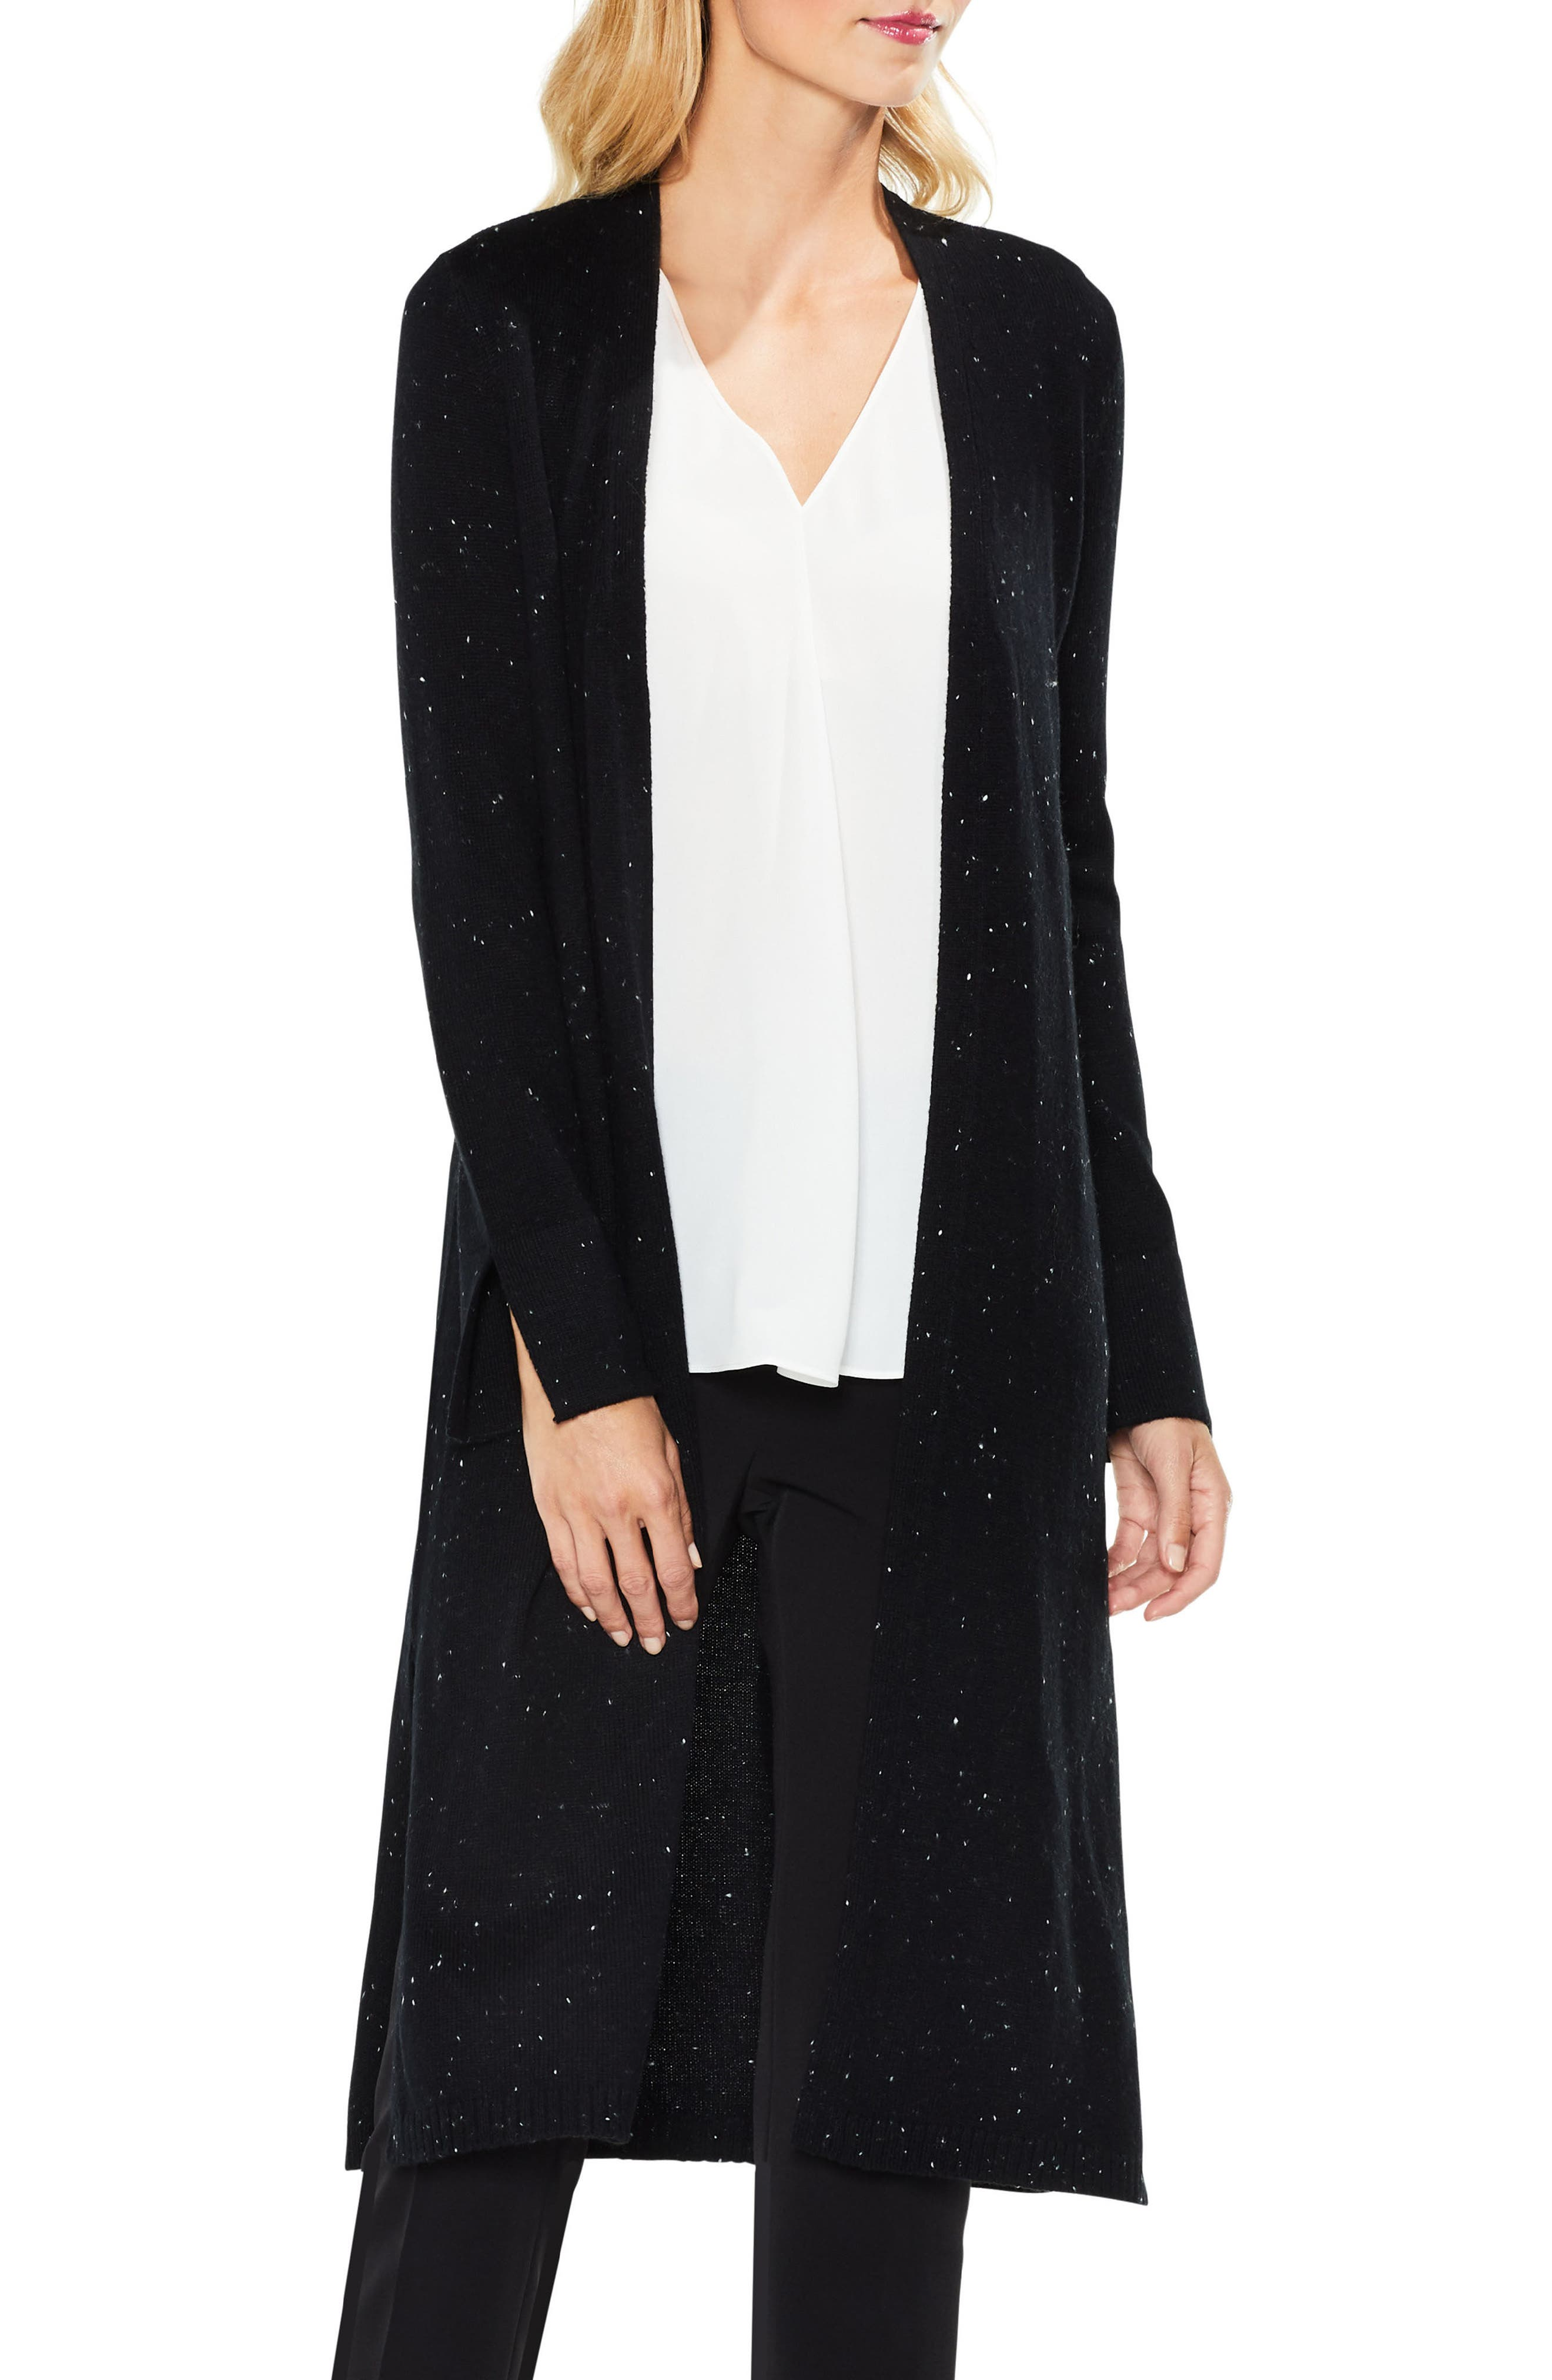 Vince Camuto Speckled Open Front Maxi Cardigan